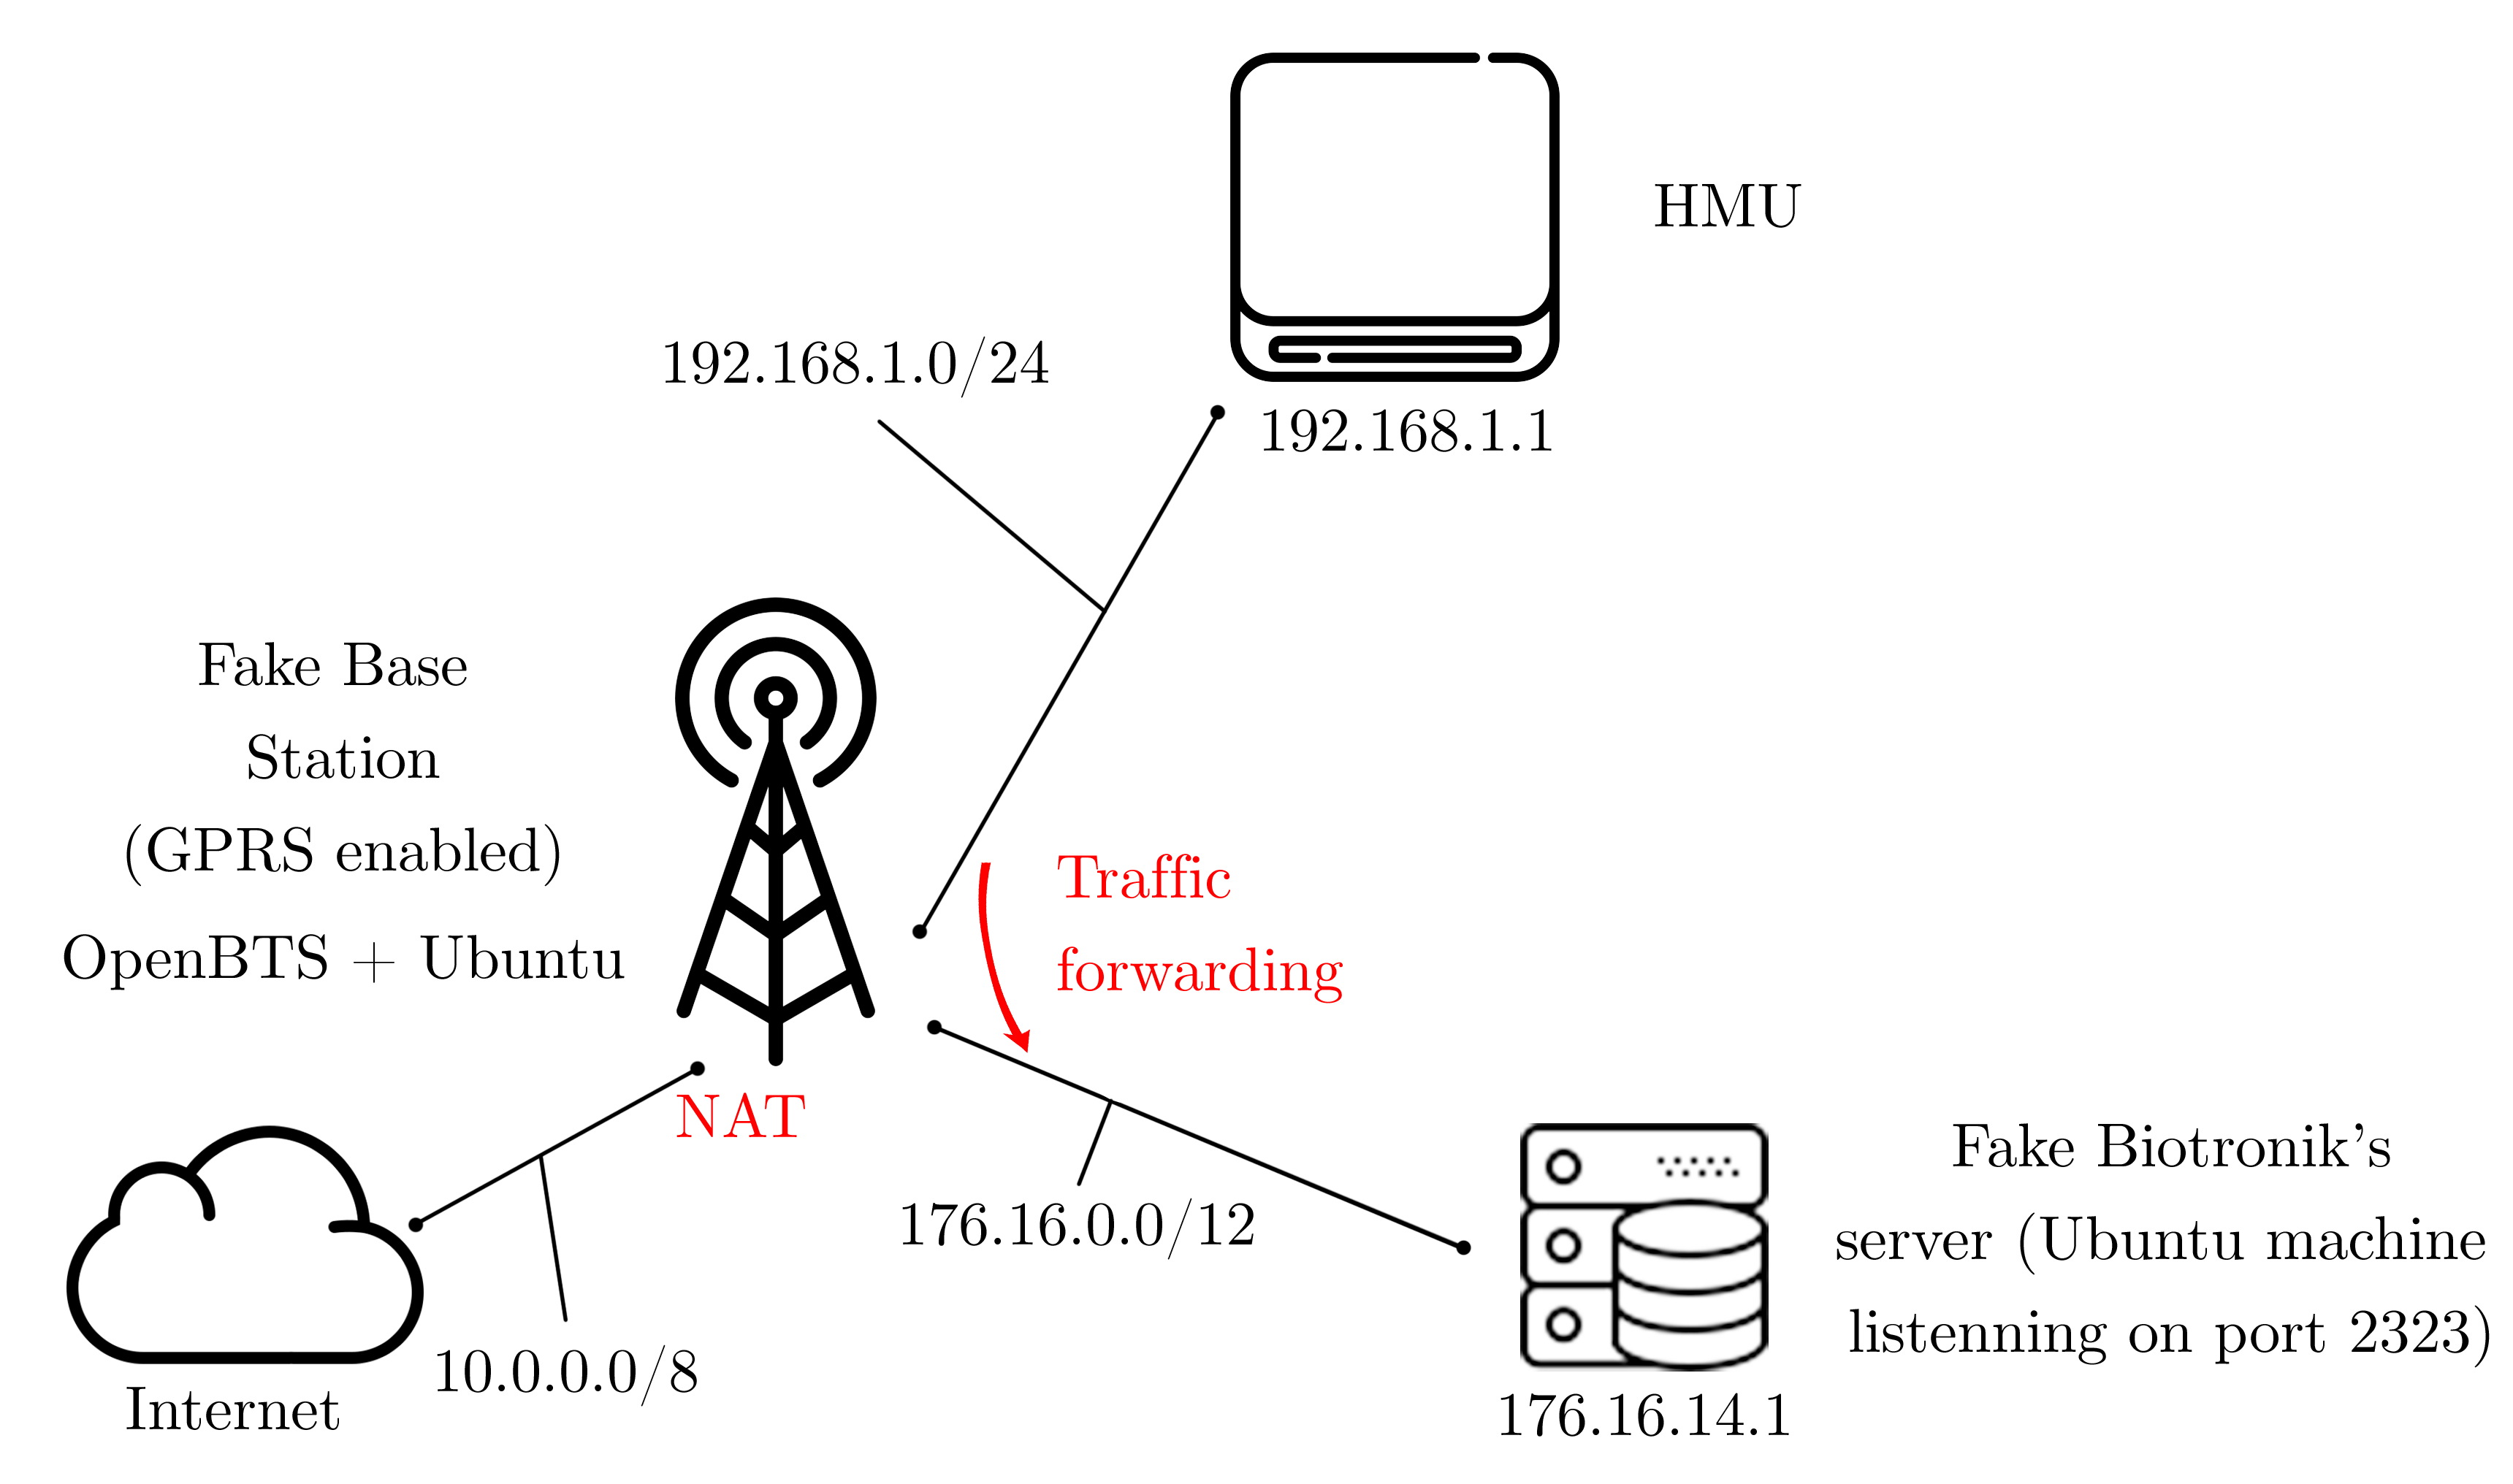 Figure 2: Network diagram of the emulated network